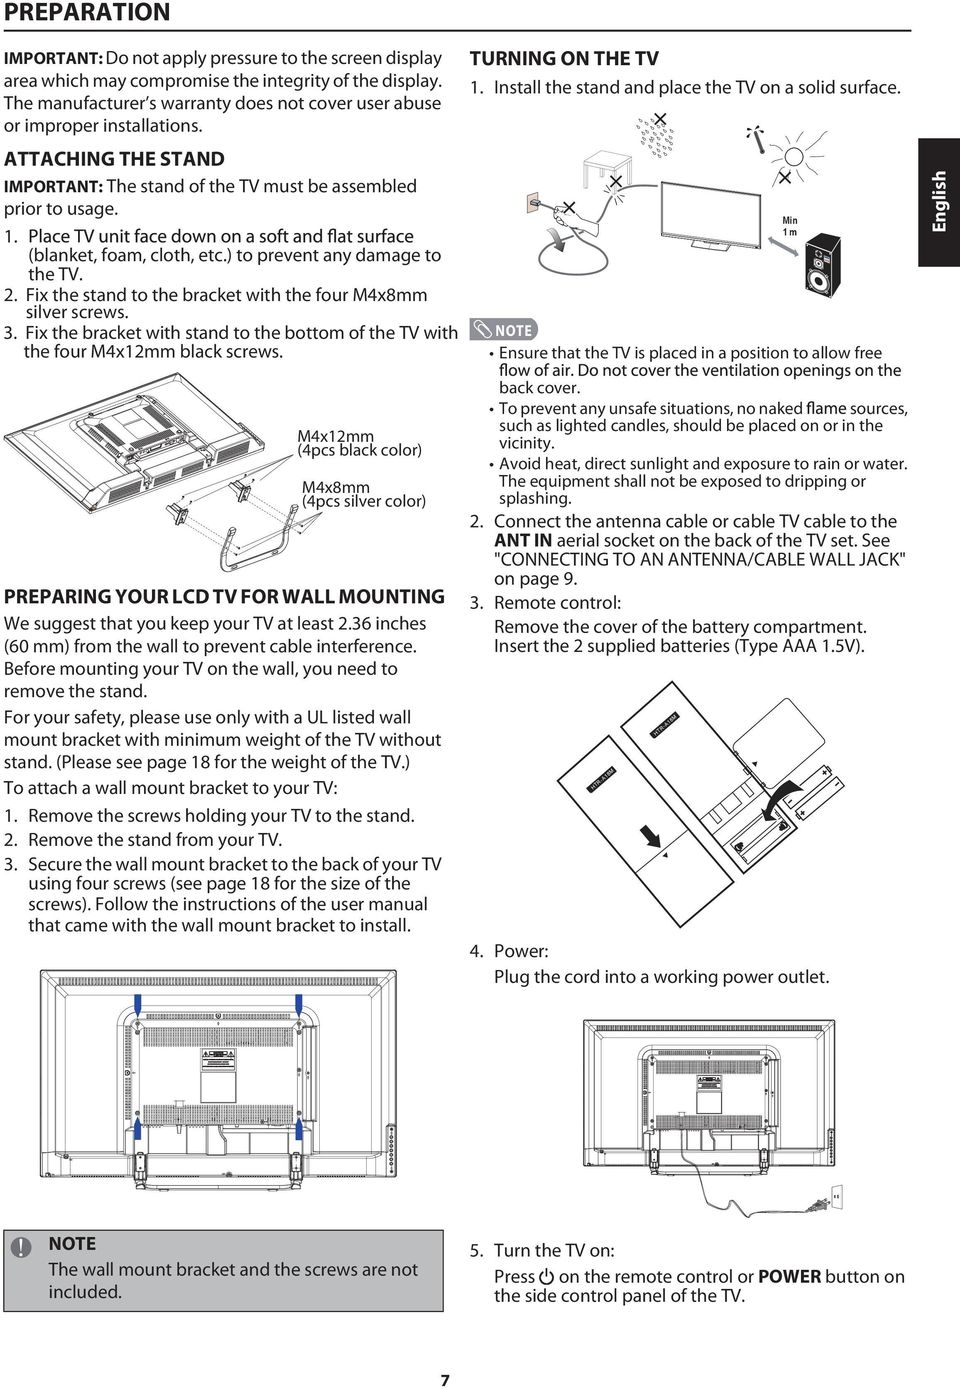 ) to prevent any damage to the TV. 2. Fix the stand to the bracket with the four M4x8mm silver screws. 3. Fix the bracket with stand to the bottom of the TV with the four M4x12mm black screws.